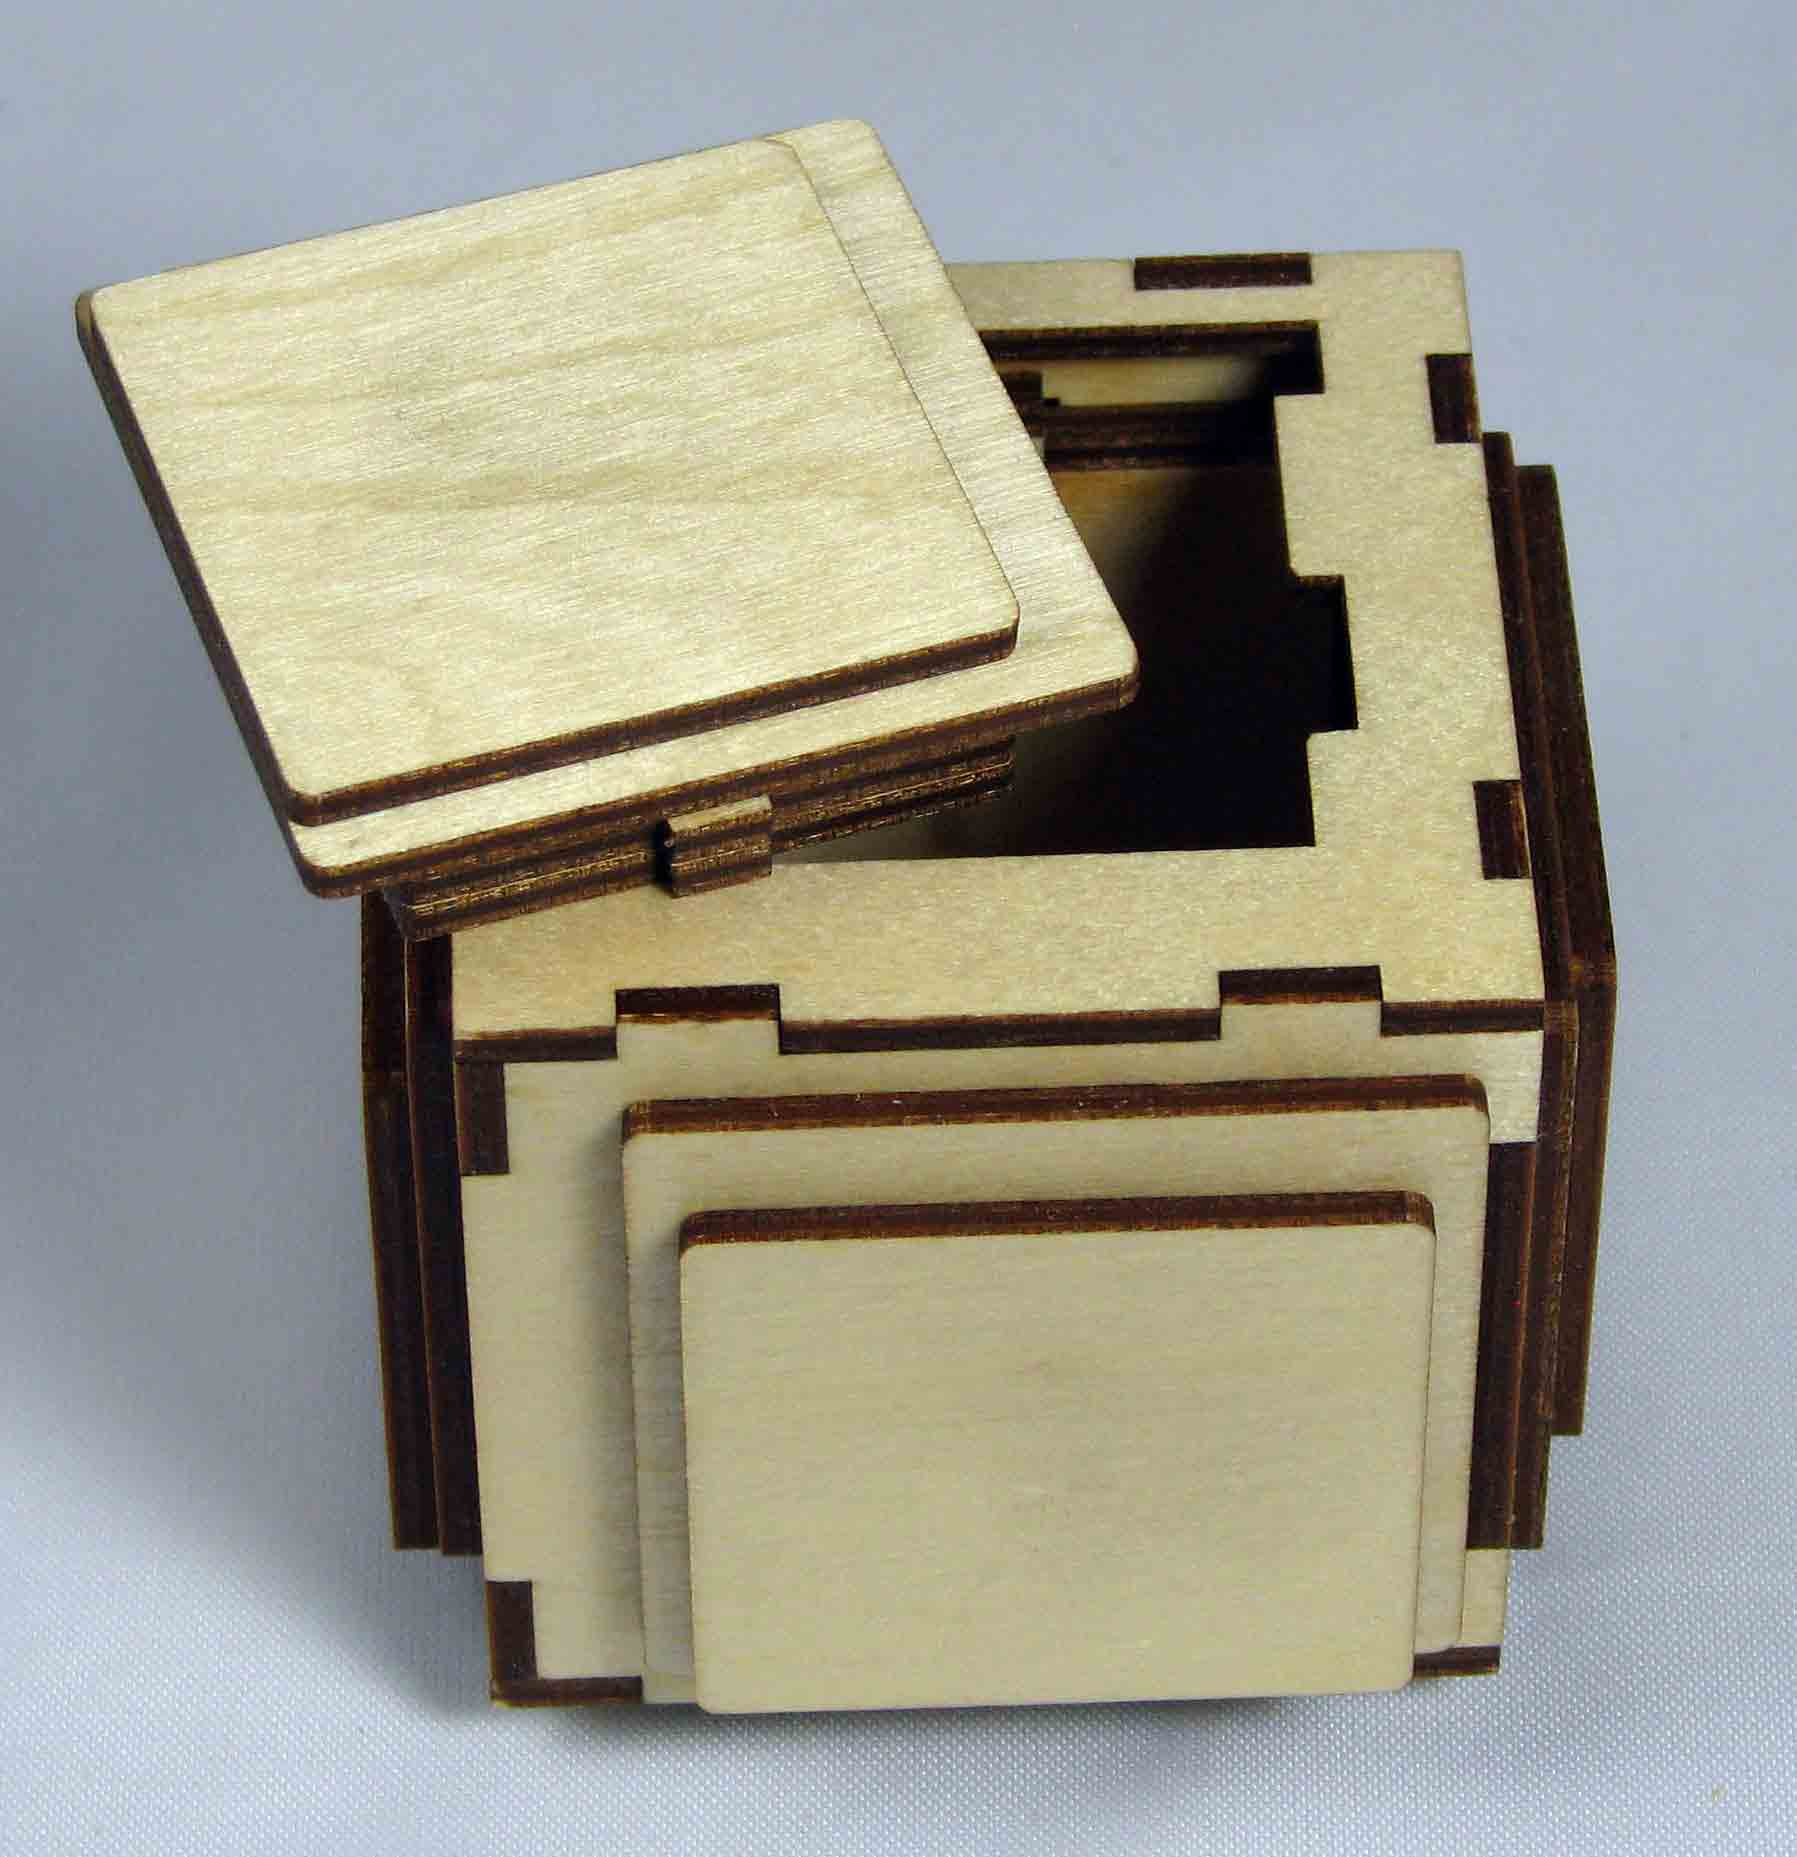 ... puzzle box displaying 20 images for chinese puzzle box toolbar creator